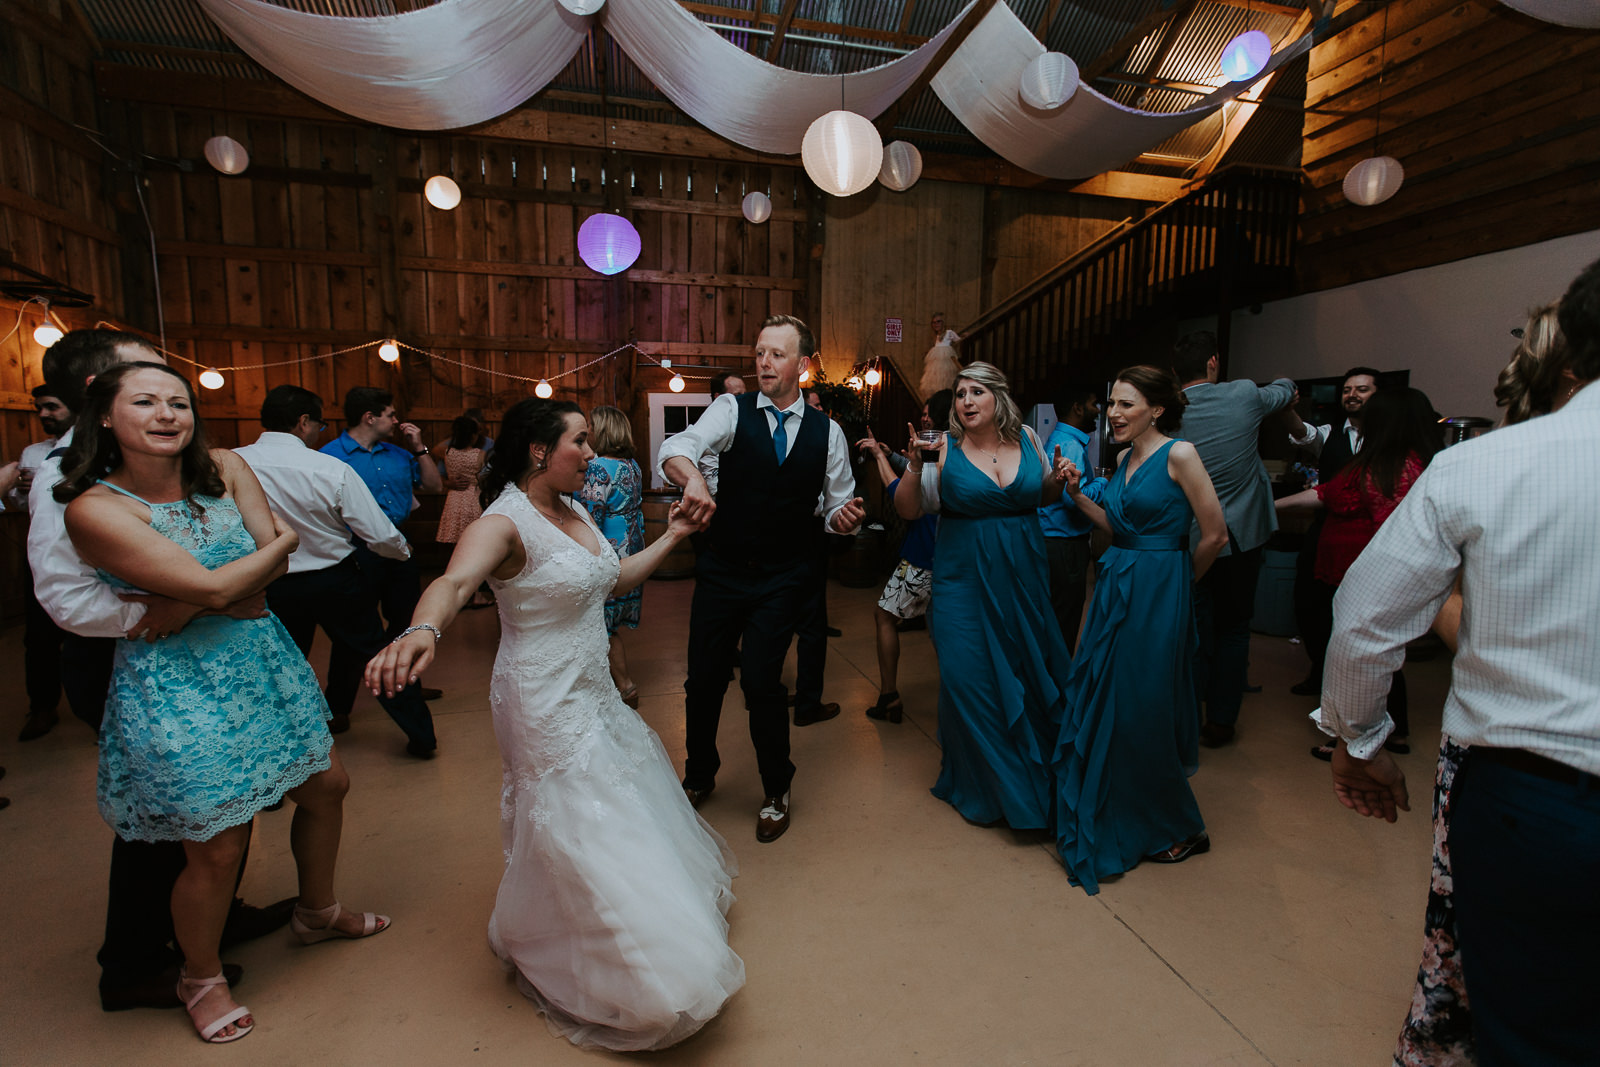 Bride and groom dancing with wide view of guests inside barn in Palisade, CO